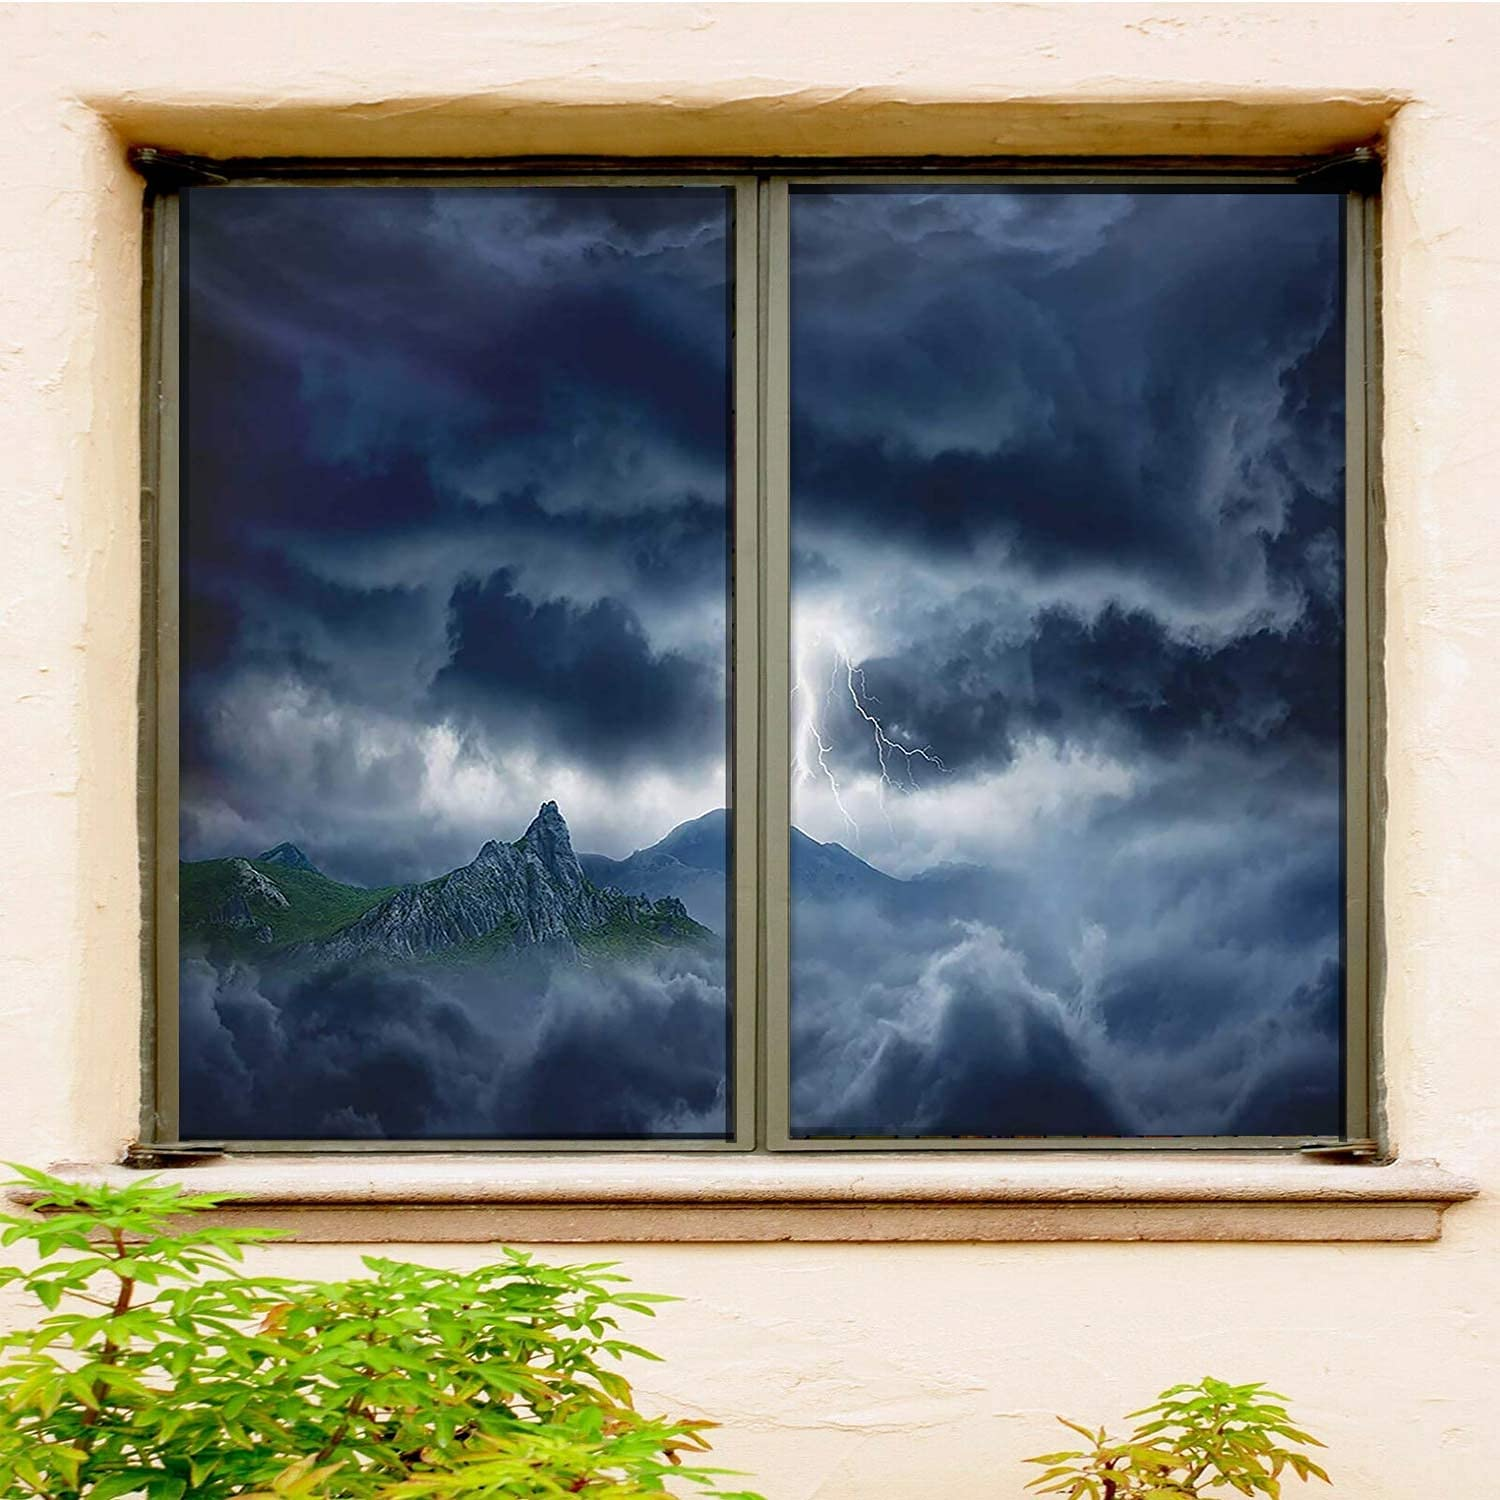 Nature High quality new Office Window Film Self-Adhesive 2 PCS Fi New mail order Blue Set